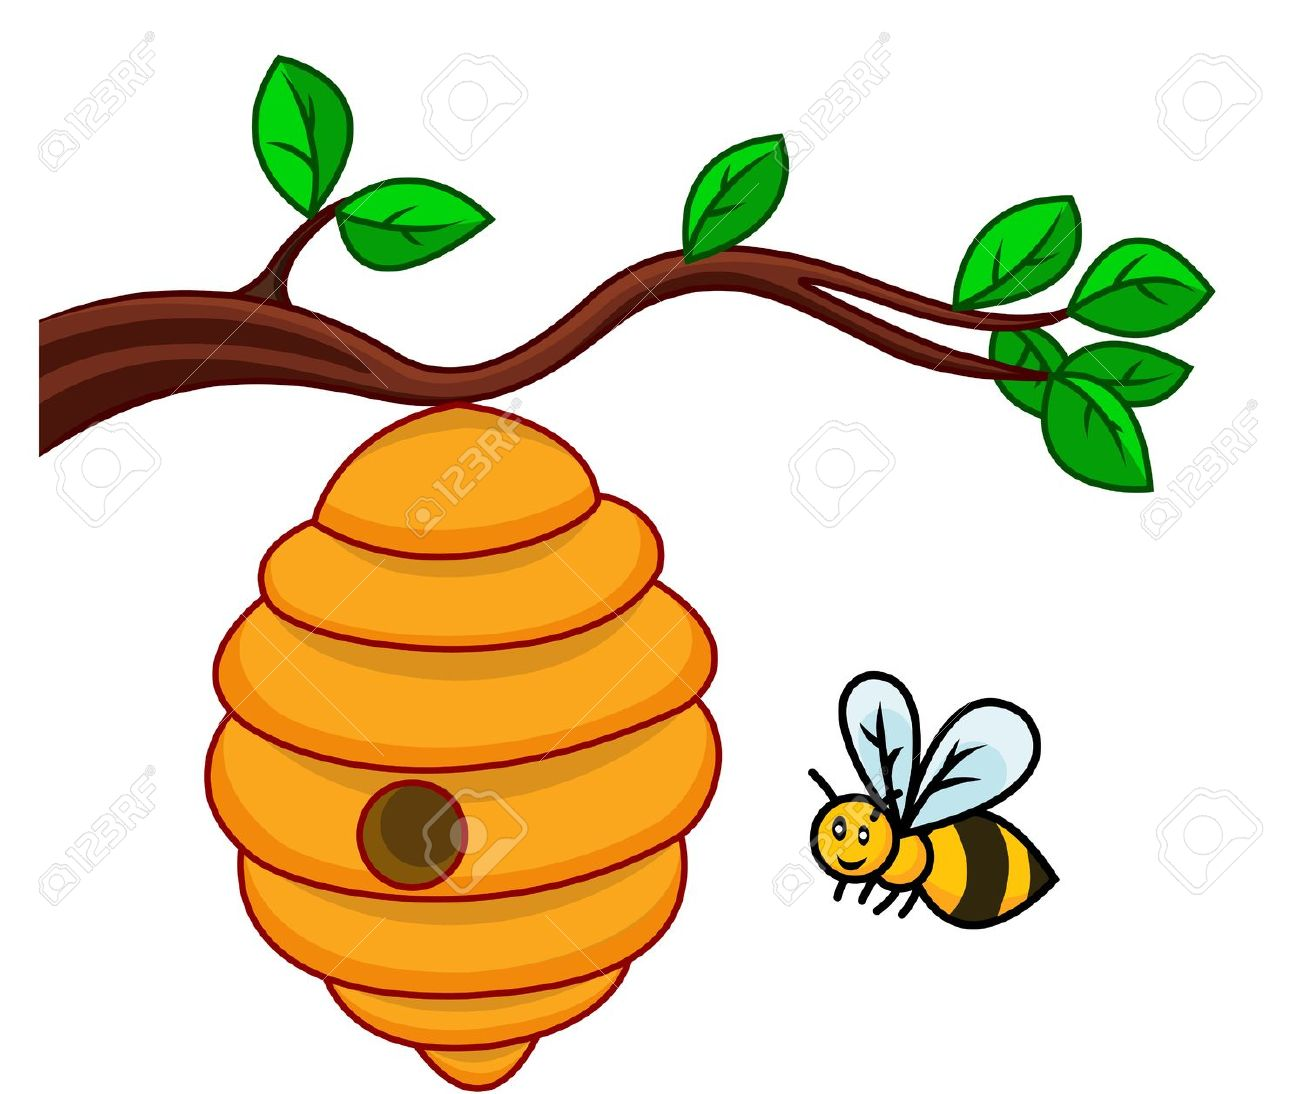 Beehive from tree clipart clipart freeuse Bee hive in tree clipart - ClipartFest clipart freeuse